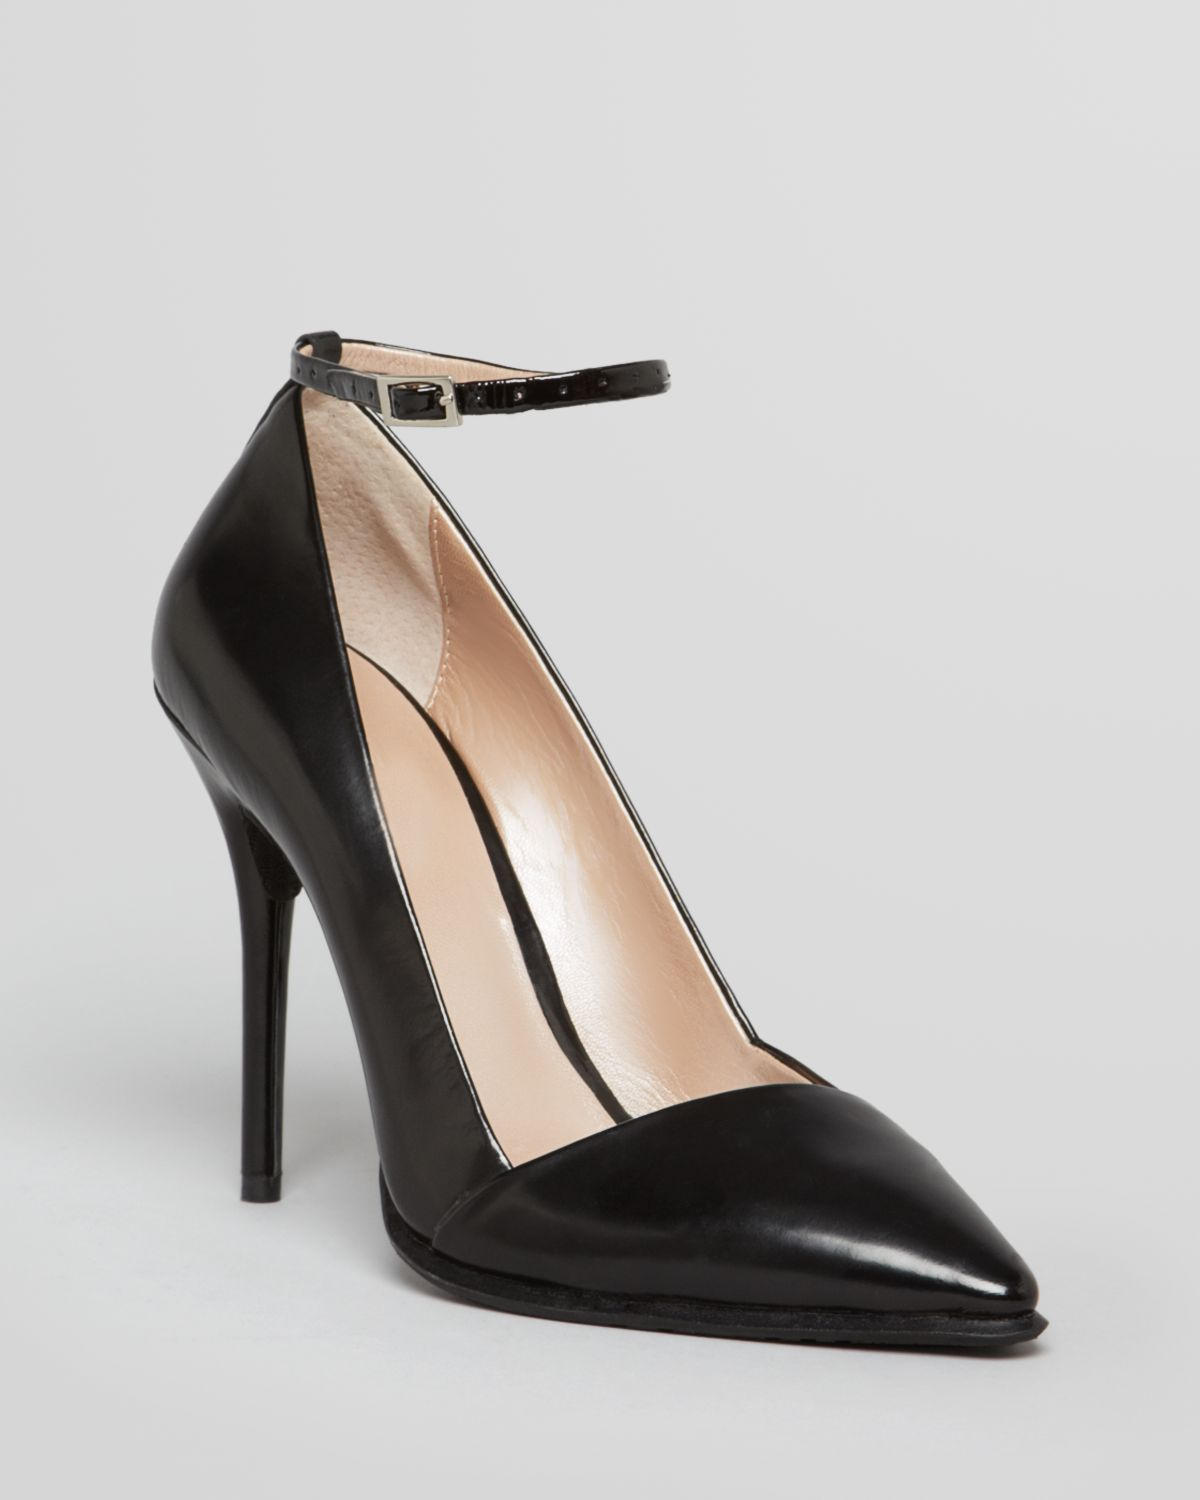 Lyst - Dkny Pointed Toe Pumps Saffi Ankle Strap High Heel in Black